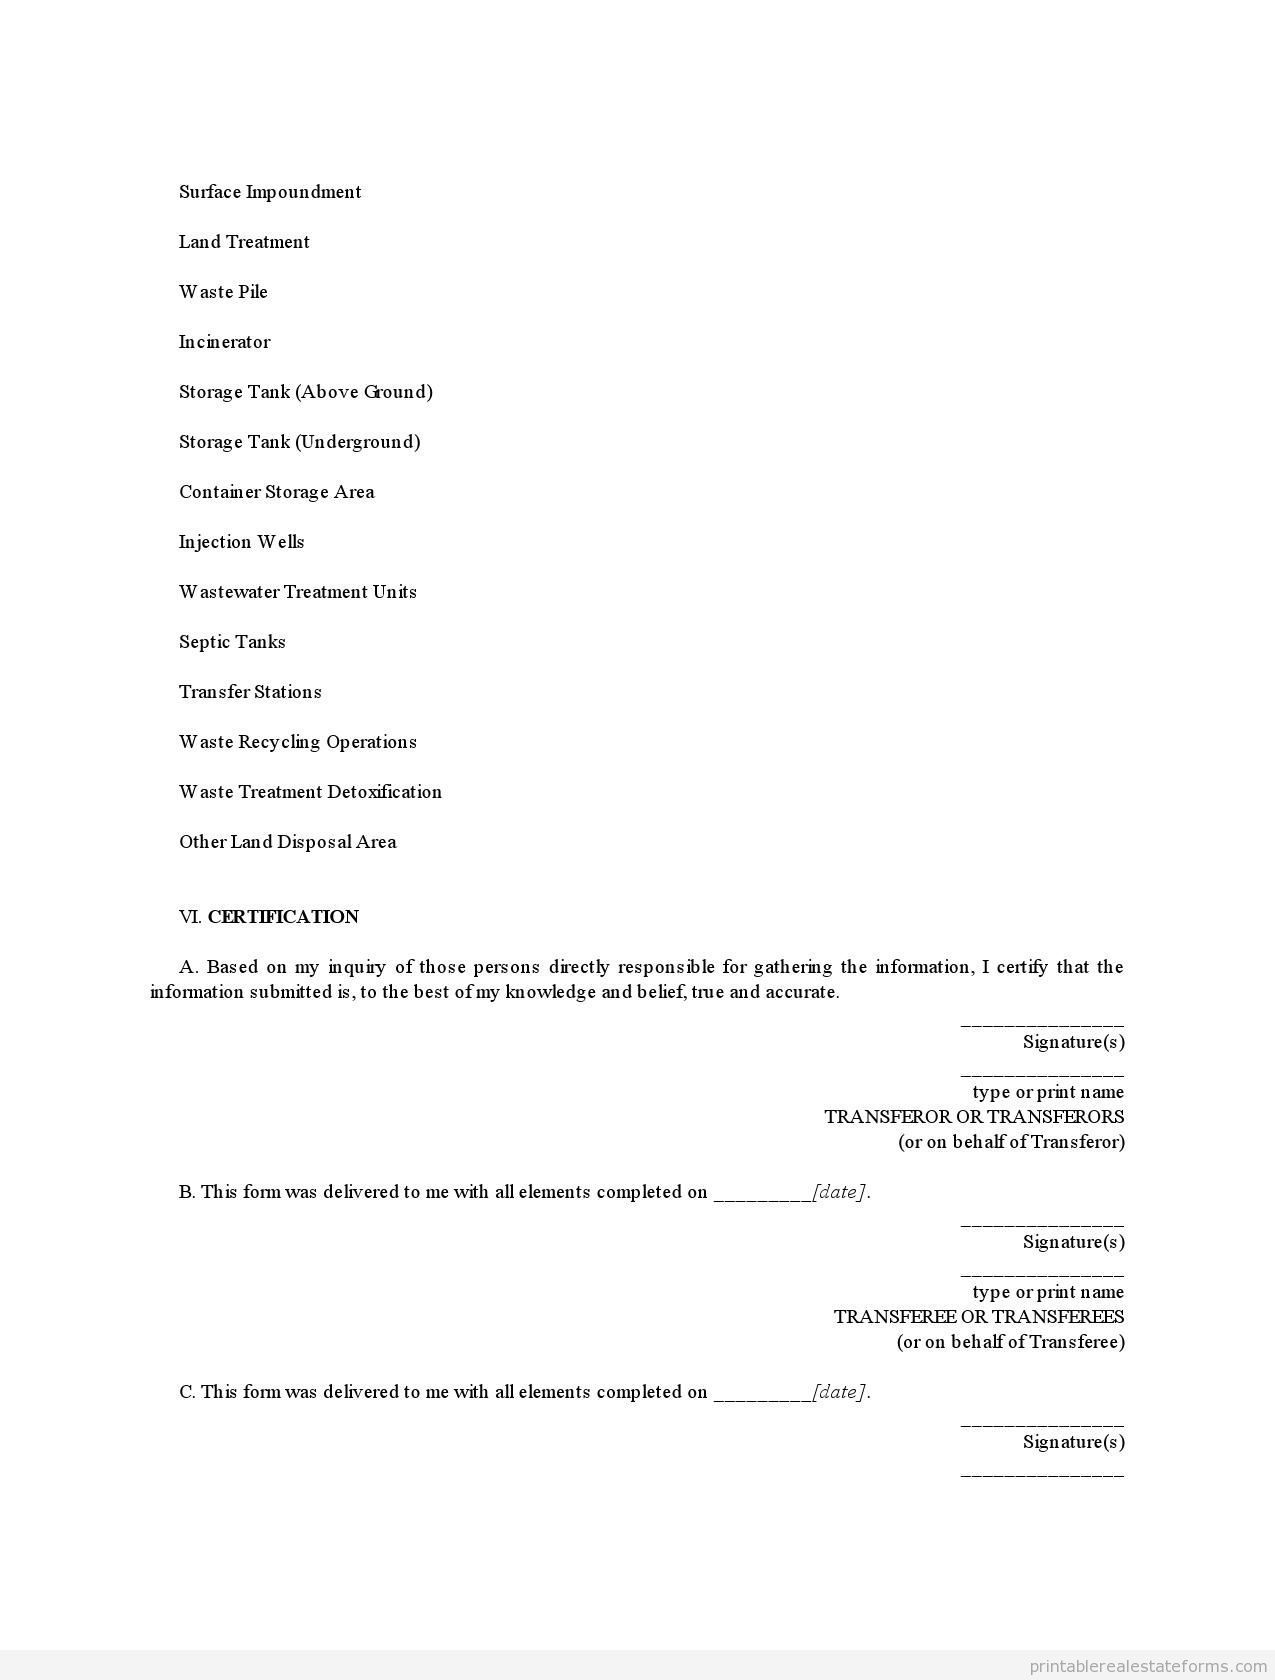 Sample Printable Illinois Environmental Disclosure Document For